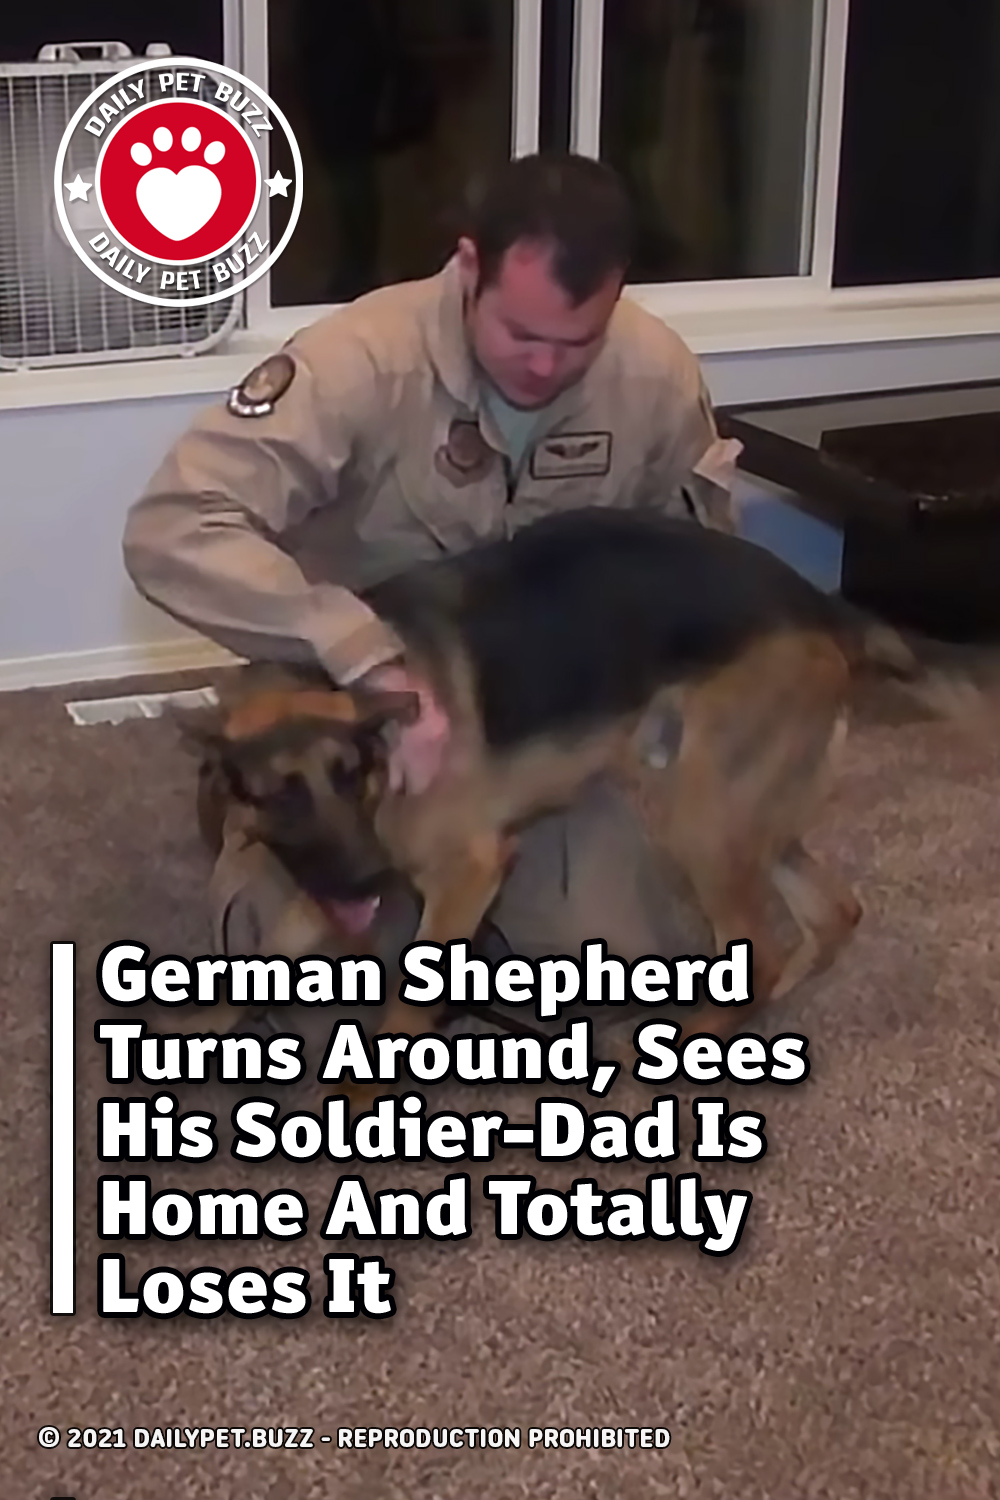 German Shepherd Turns Around, Sees His Soldier-Dad Is Home And Totally Loses It